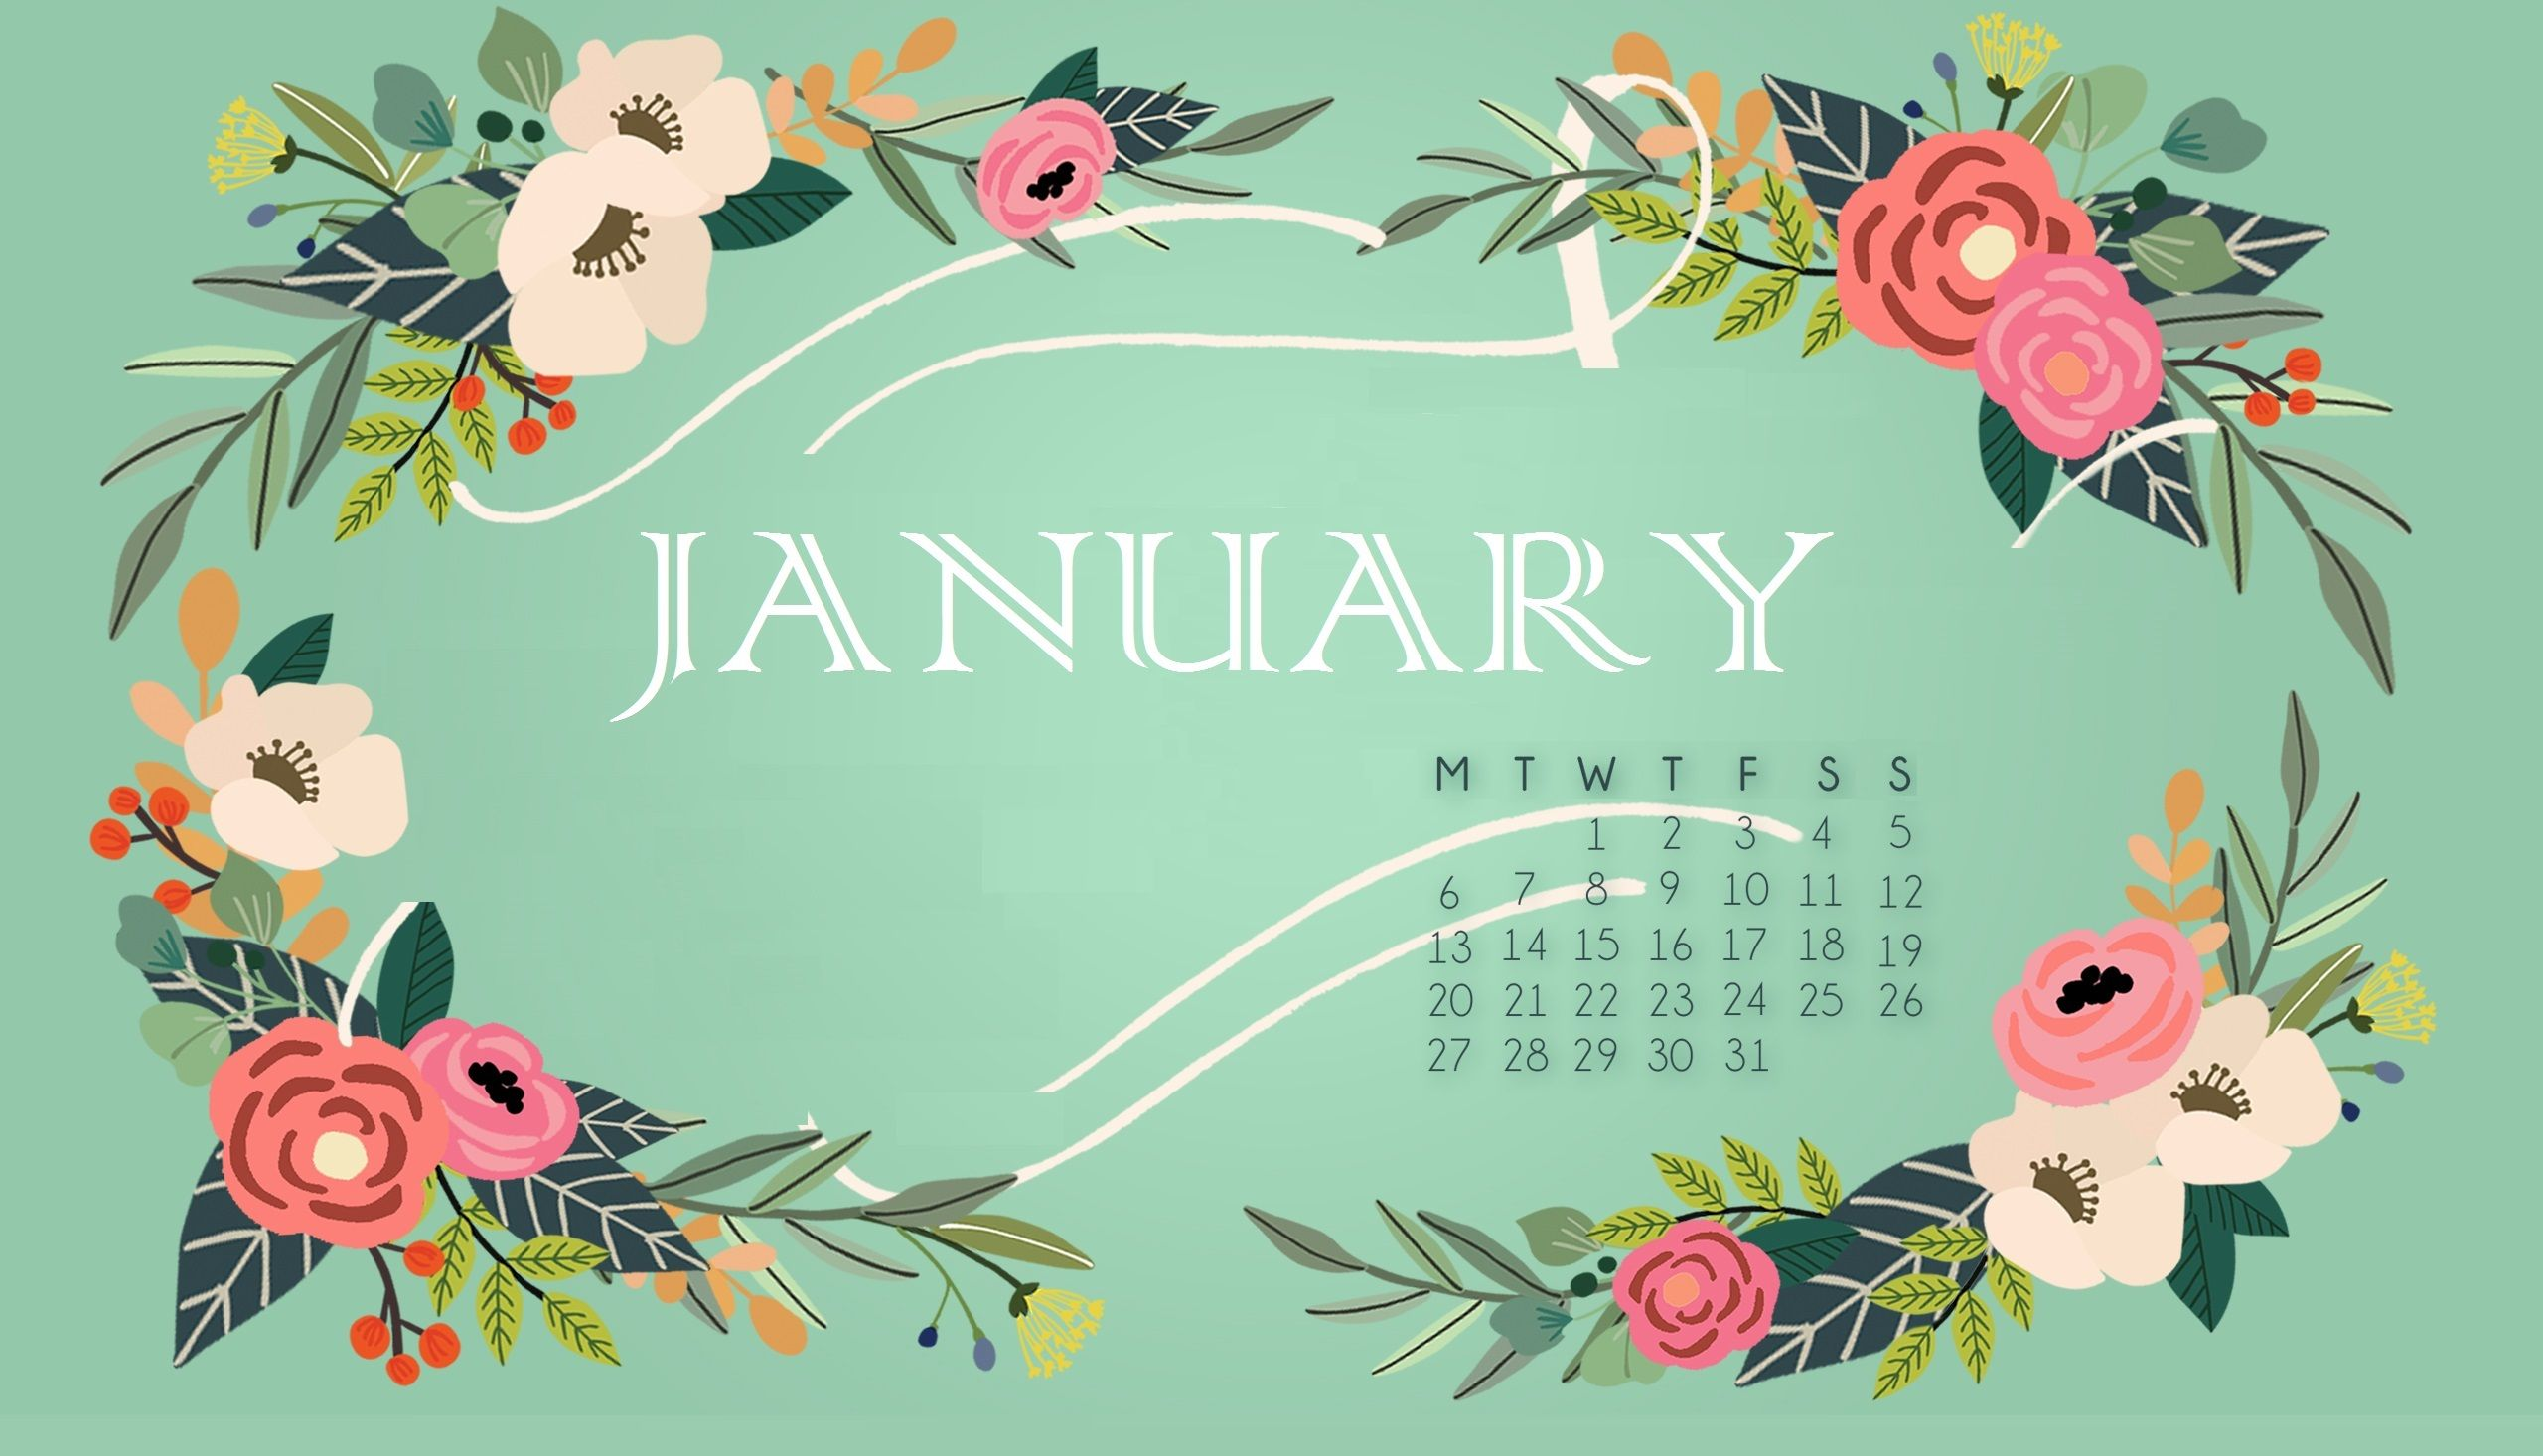 January 2020 Calendar Wallpapers   Top January 2020 Calendar 2560x1466